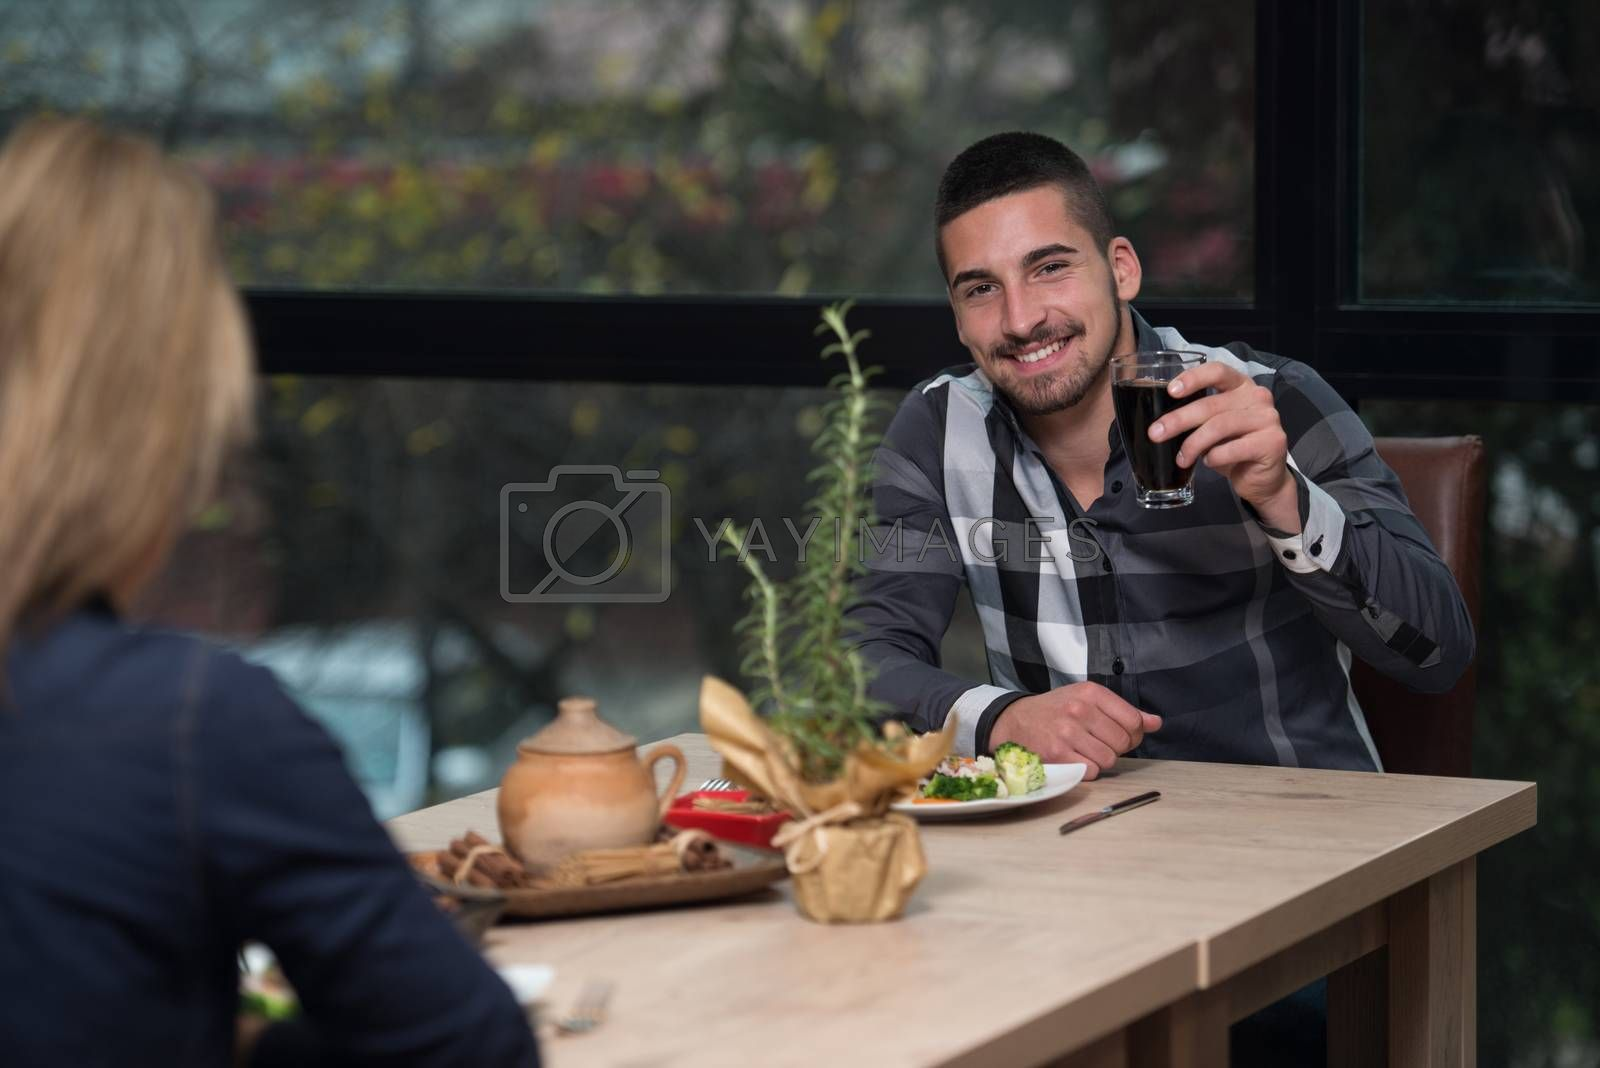 Royalty free image of Couple Enjoying Meal In Restaurant by JalePhoto